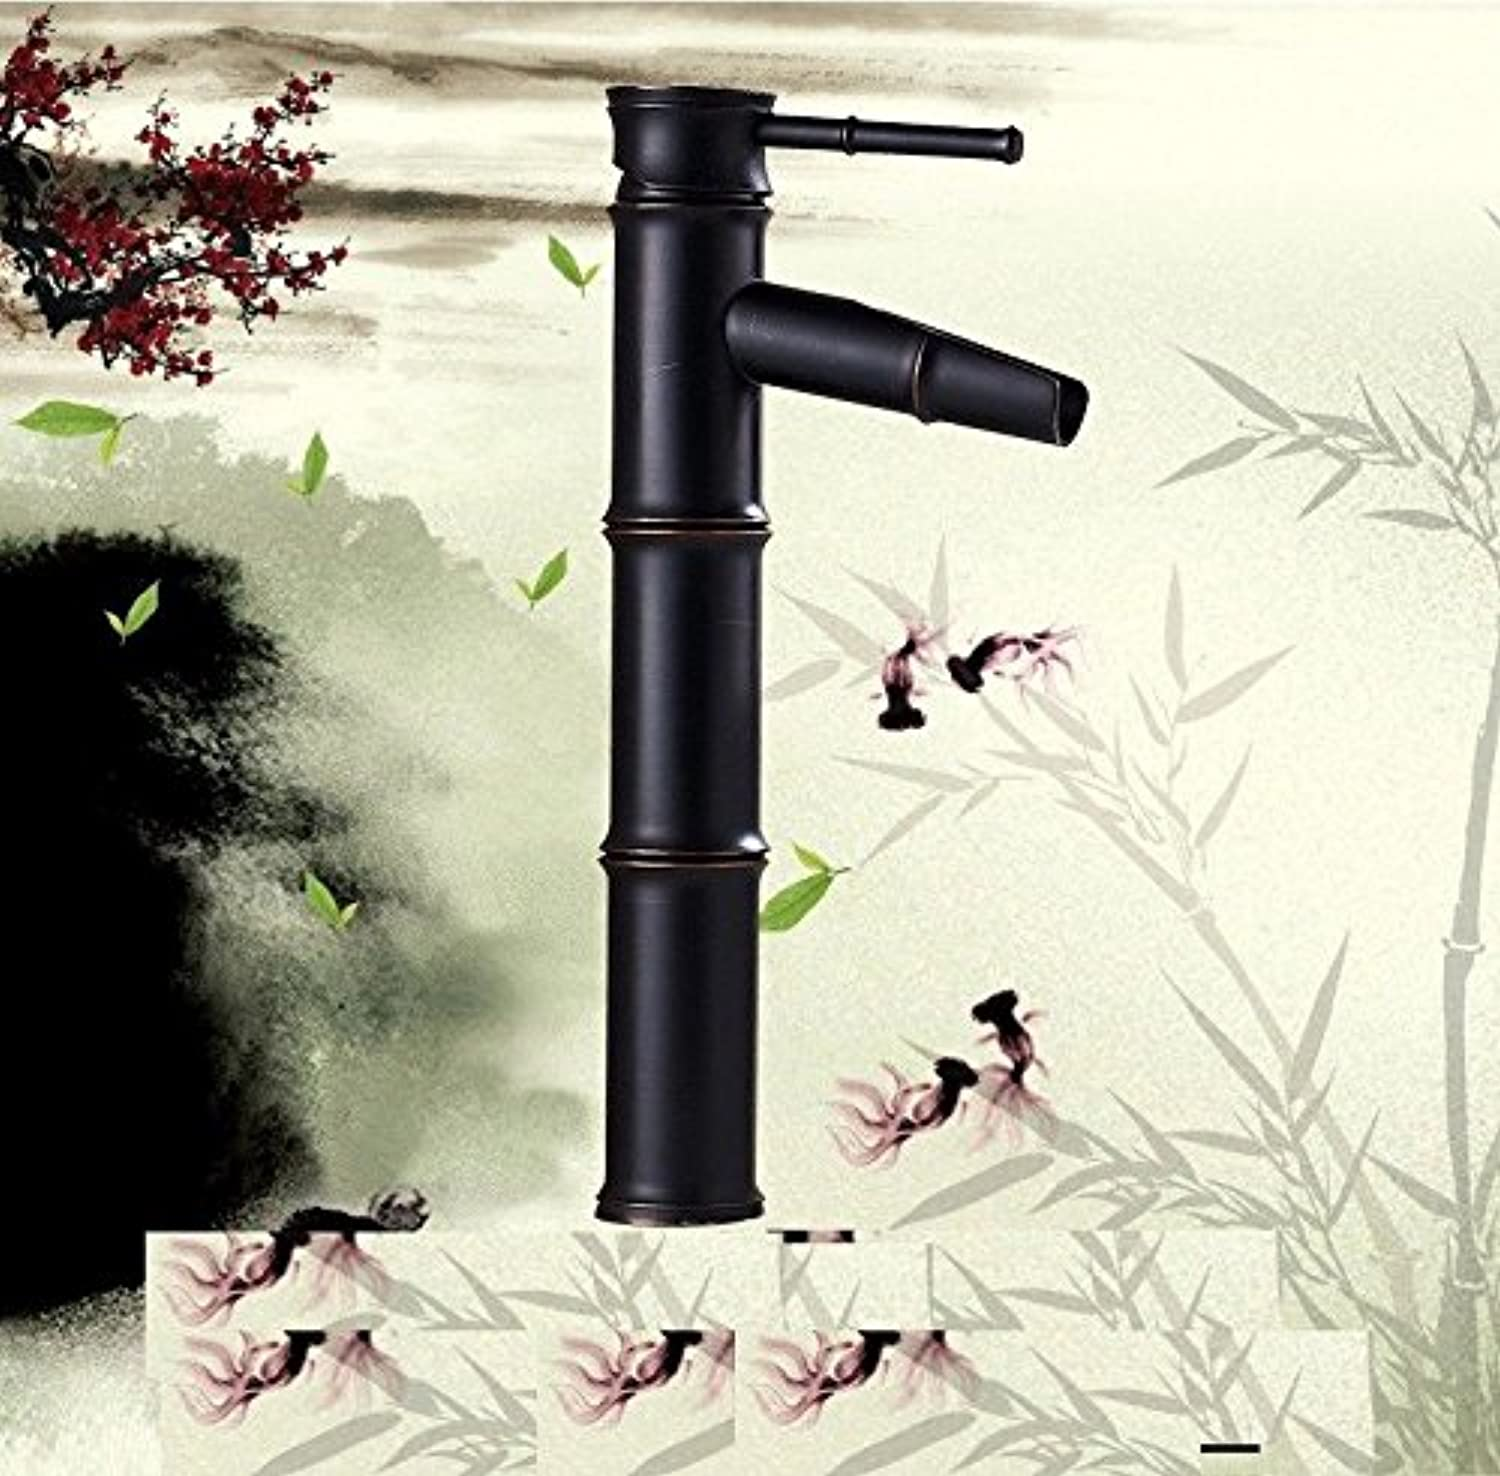 ETERNAL QUALITY Bathroom Sink Basin Tap Brass Mixer Tap Washroom Mixer Faucet Bamboo water-saving faucets antique copper basin-wide hot and cold blender Kitchen Sink Taps